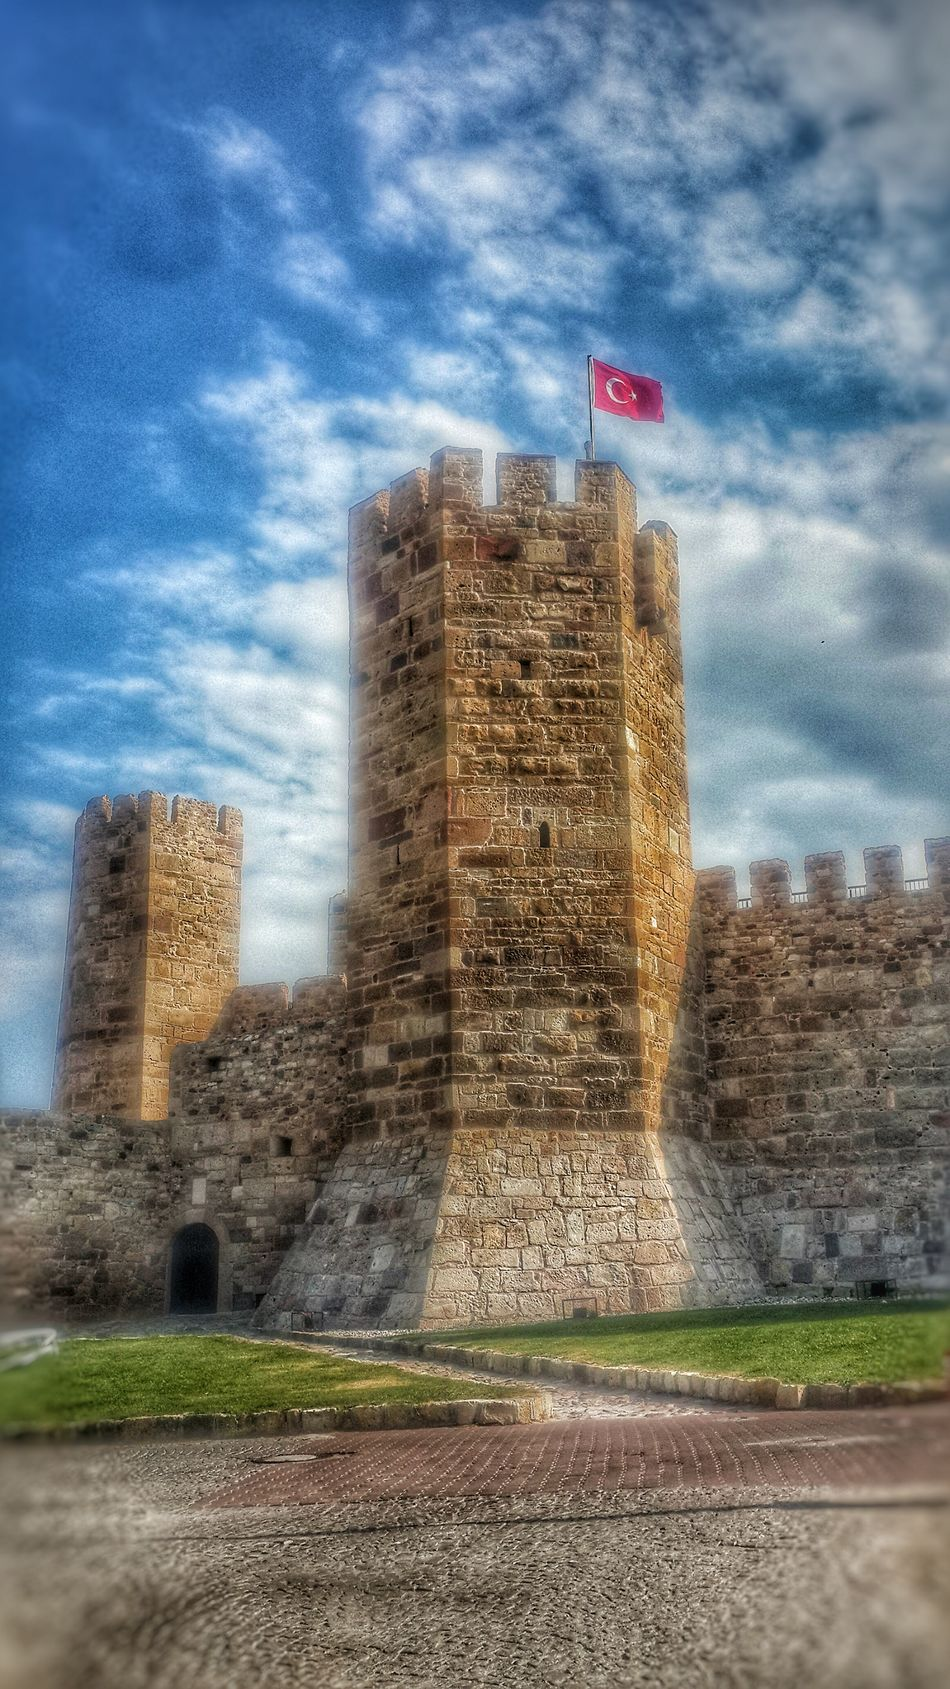 Architecture Tower Hdr Collections Hdrepublic No People Sky Hello World Mycity Cityscapes Popular Photos Today's Hot Look Türkiye Lanscape Photography Izmir Landscape Cloud And Sky Cloud_collection  Castle View  Türkei Cerablus Flag Taking Photos Hi Modern EyeEm Best Shots